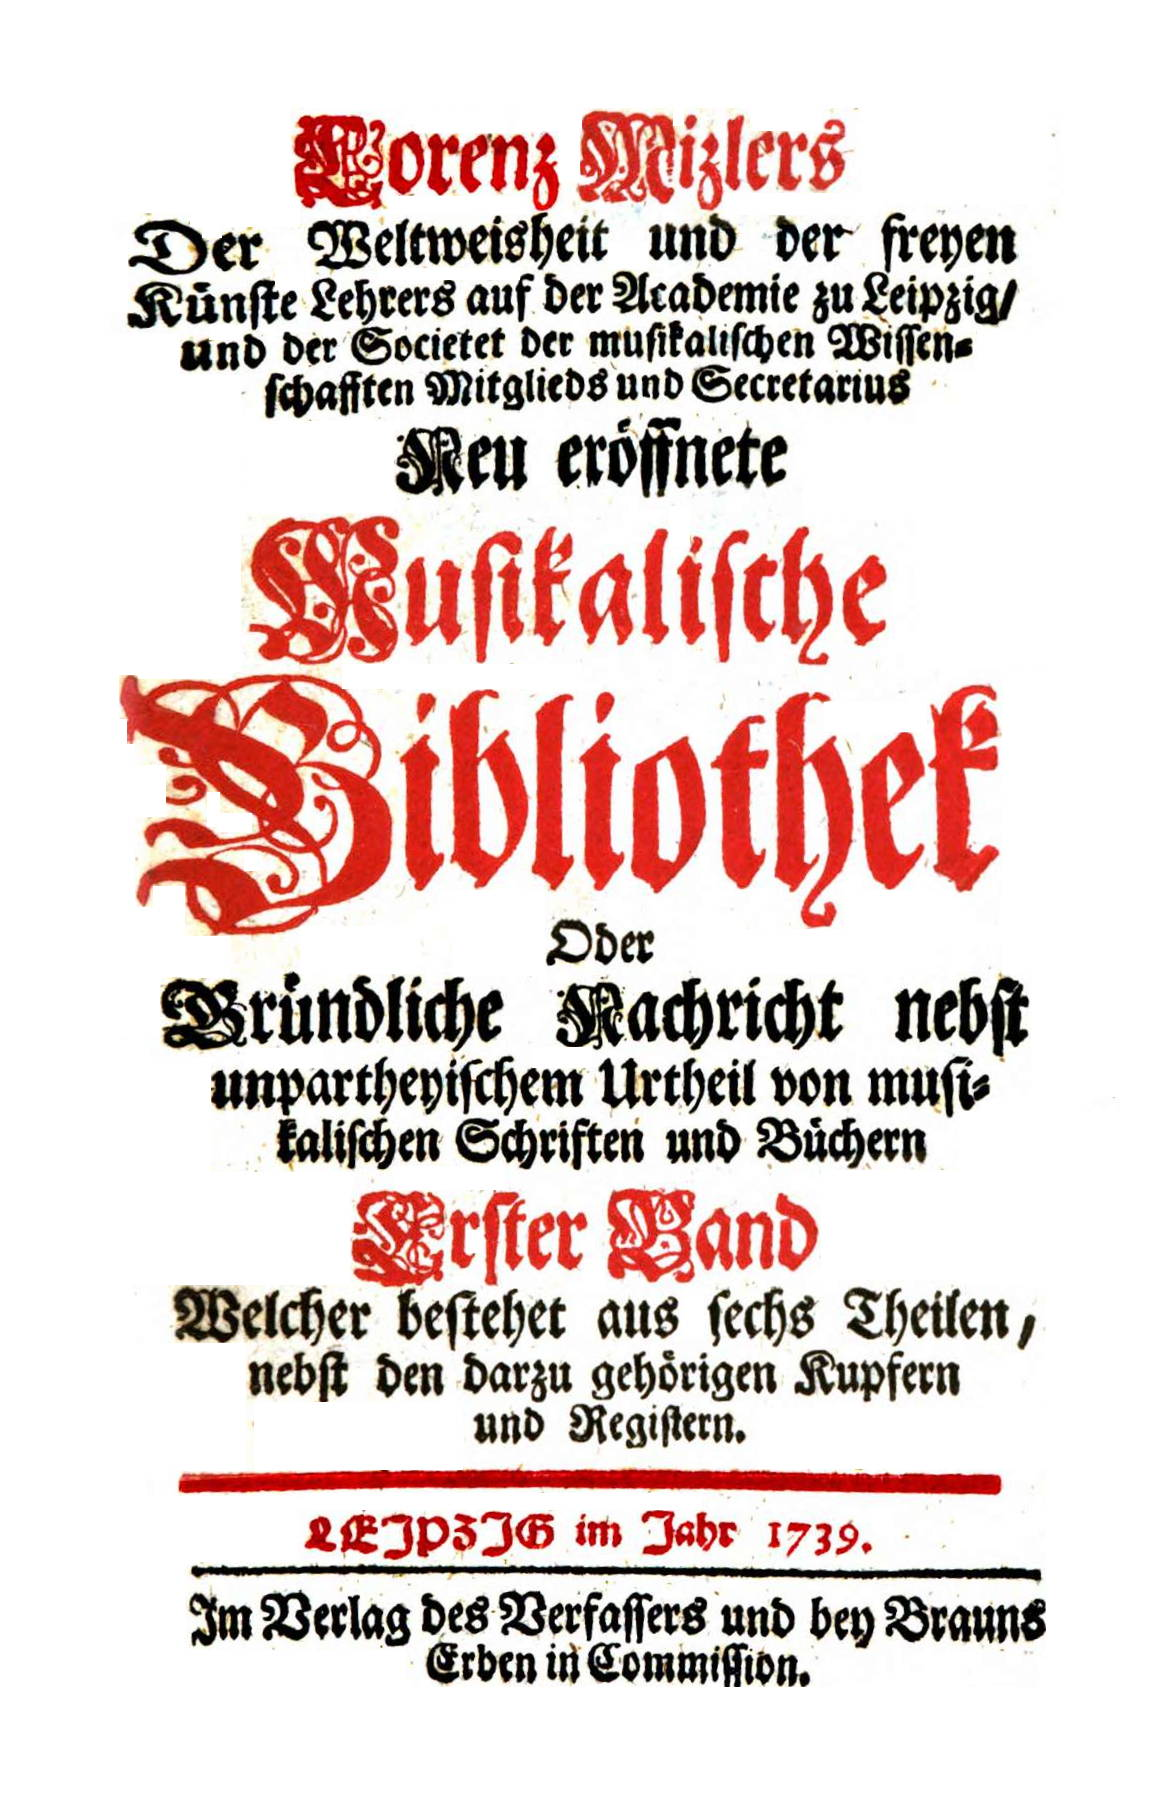 Title page of one of the issues of Mizler's Musikalische Bibliothek journal, Leipzig, 1739.